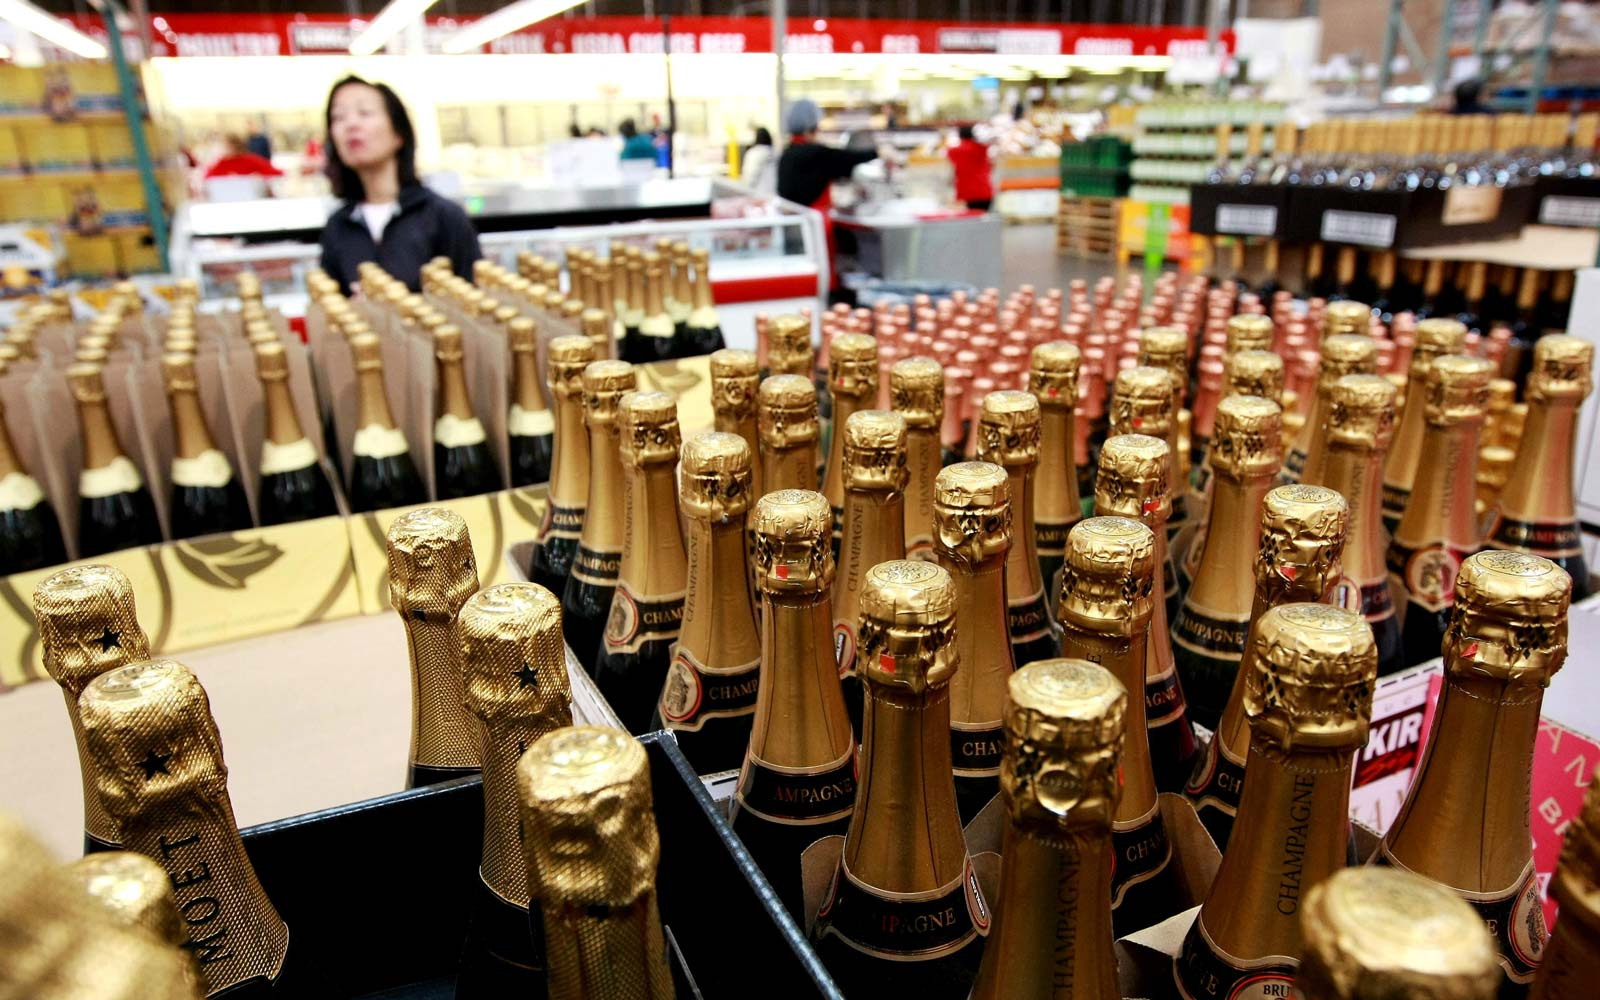 A Costco customer shops for champagne